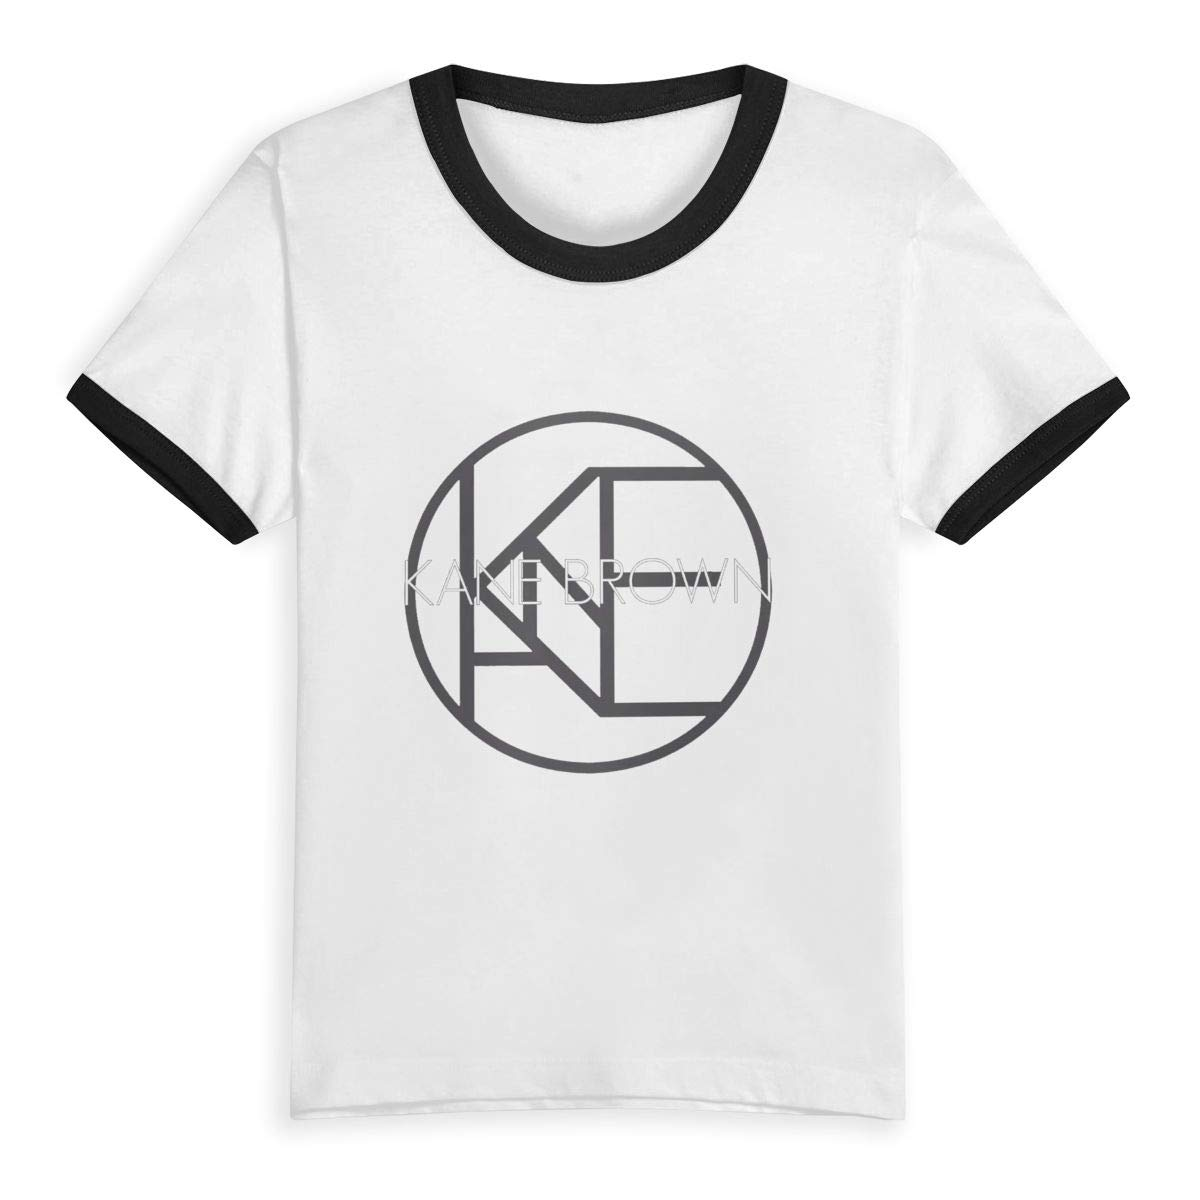 Crazy Kane Brown Unisex Kids Shirts Toddler Baby Cotton Tee Boys Girls Baseball Short Sleeve T-Shirt Top Clothes 2-6 Years